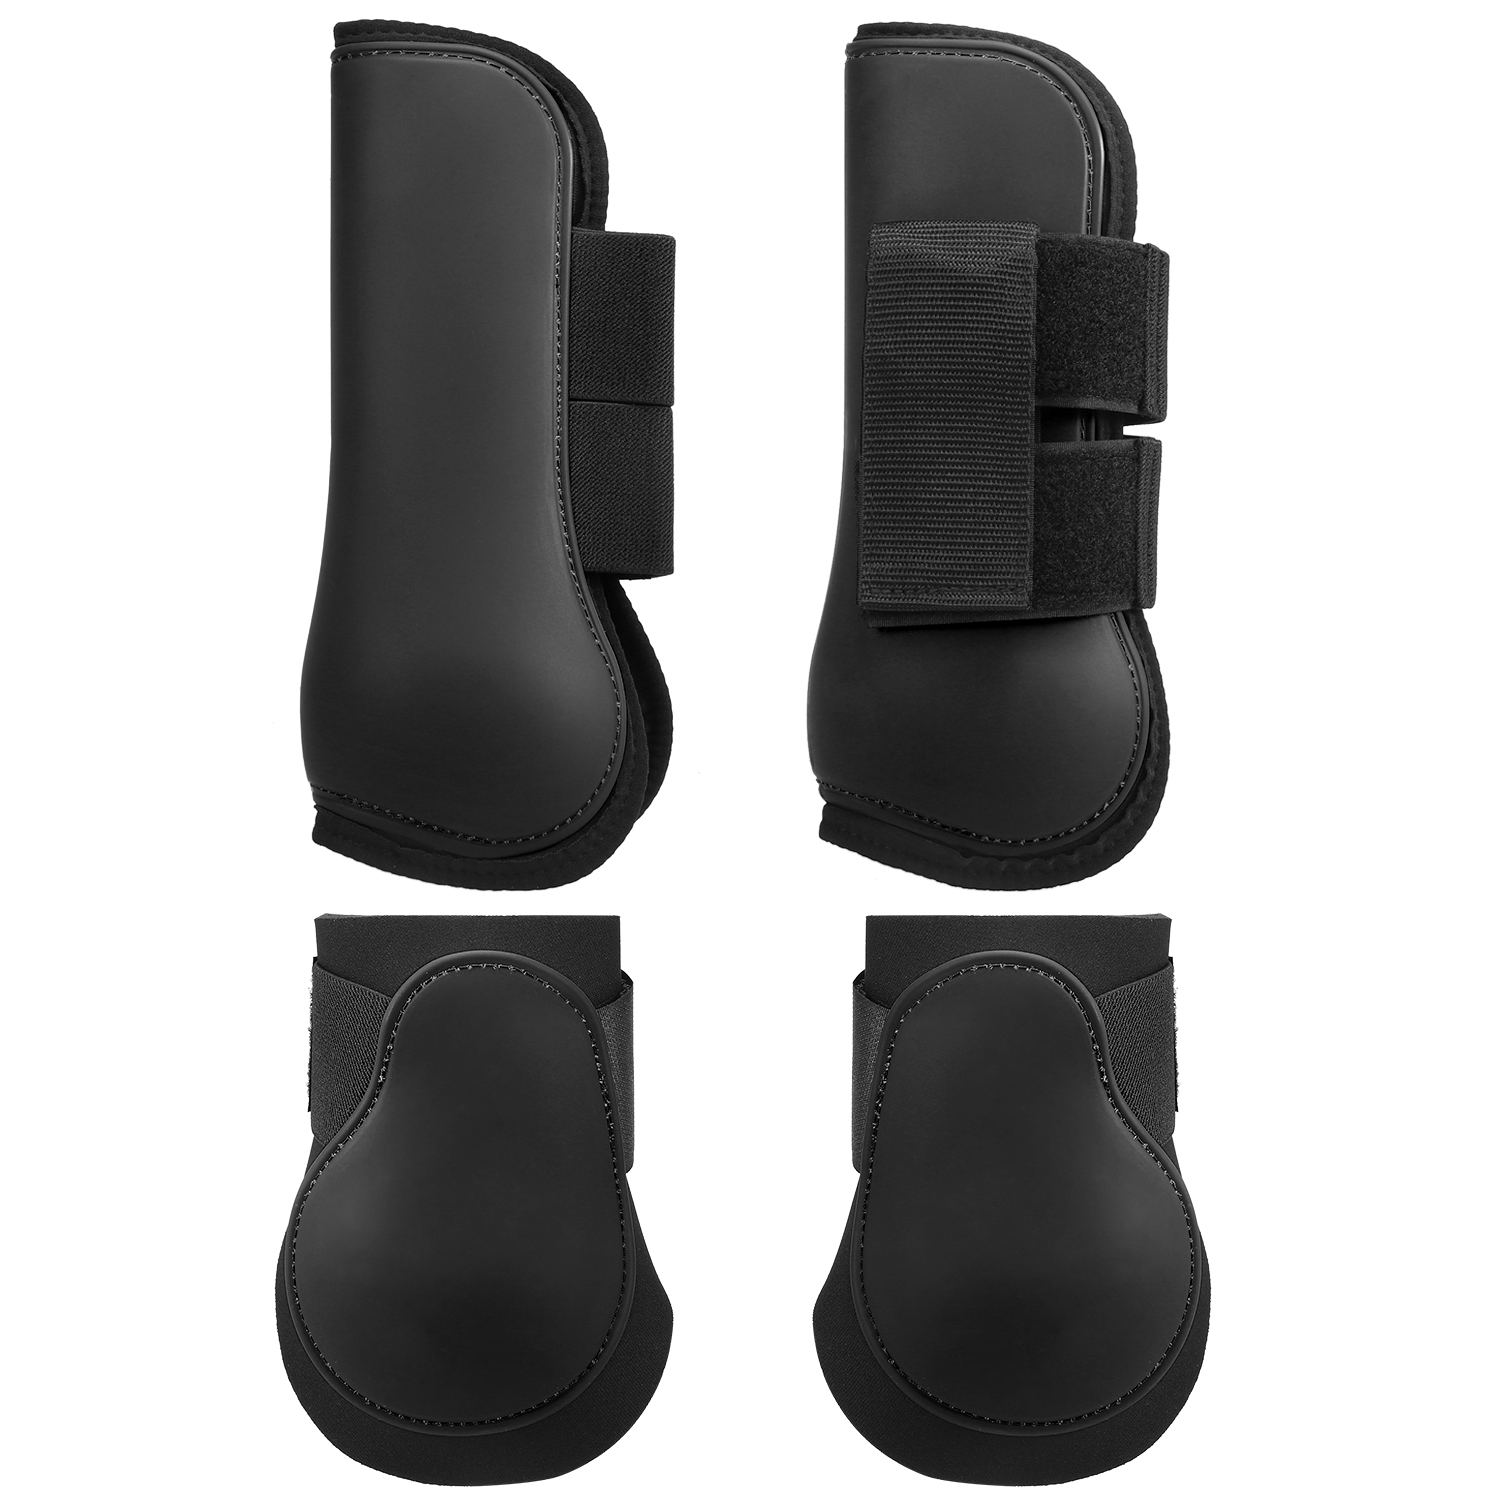 Adjustable Horse Leg Boots Set Equine Front Leg Guard Hind Boots Neoprene Horse Hock Protectors Equestrian Equipment